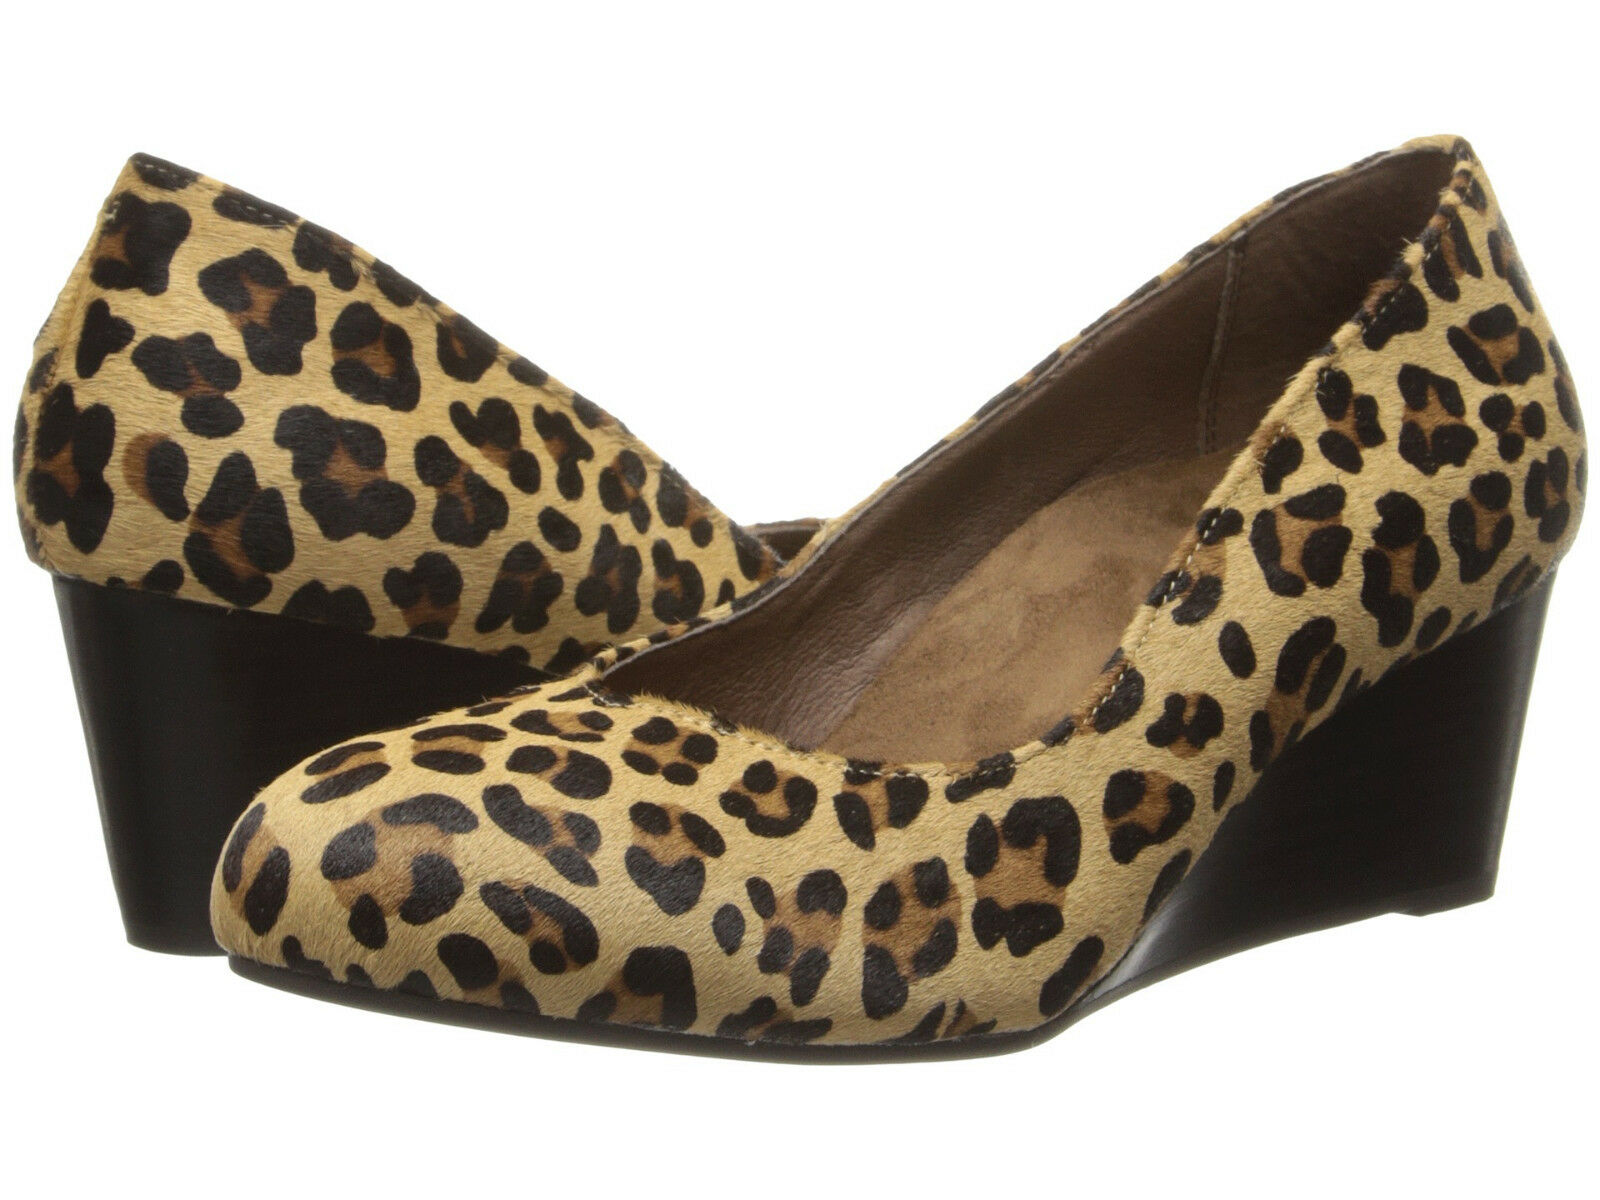 NEW VIONIC 129 TAN LEOPARD ELEVATED ANTONIA WEDGE Schuhe SZ 6